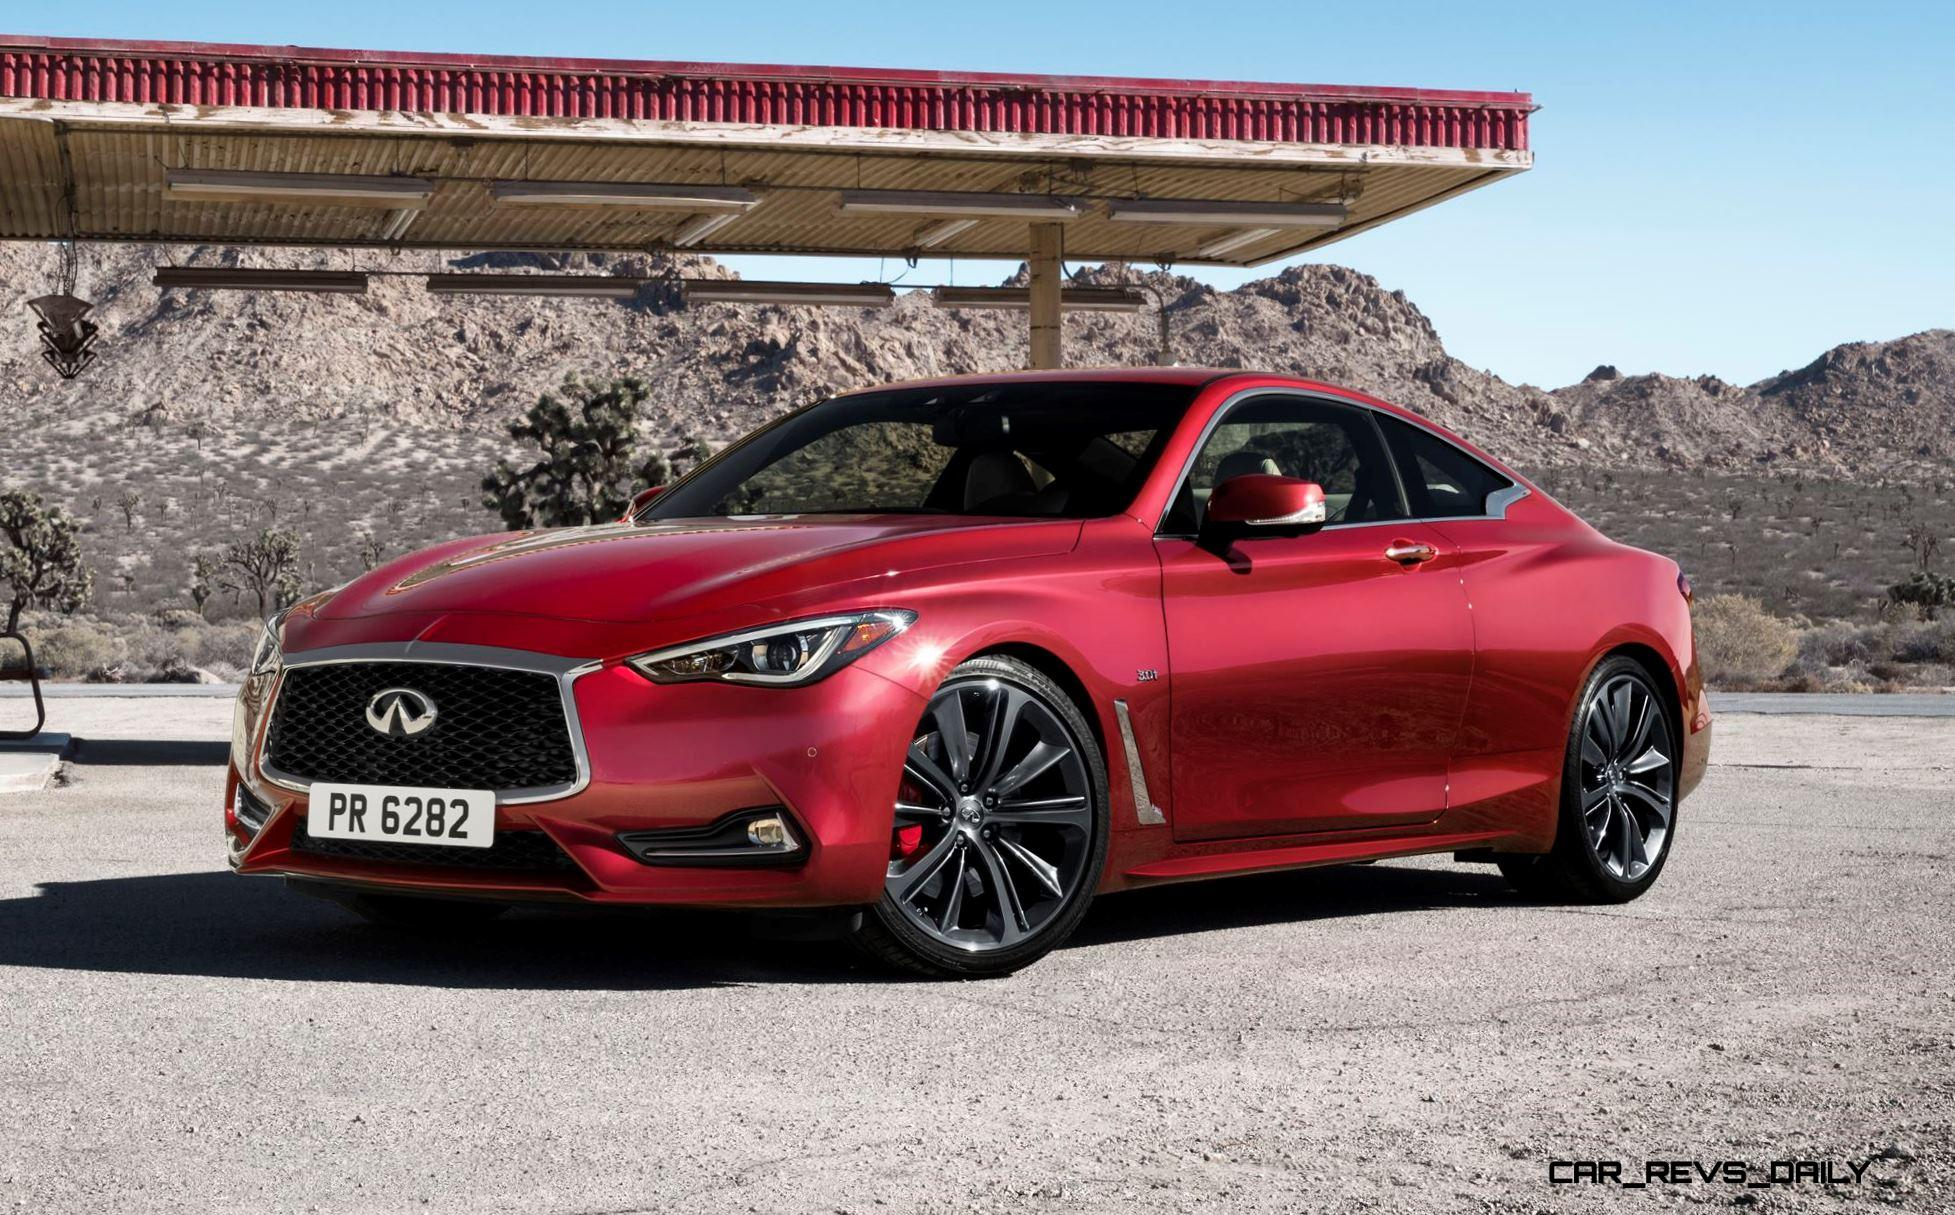 48s 400hp 2017 Infiniti Q60 3 Engines And Sexy Design Swagger To Qx60 Fuse Box The Q60s